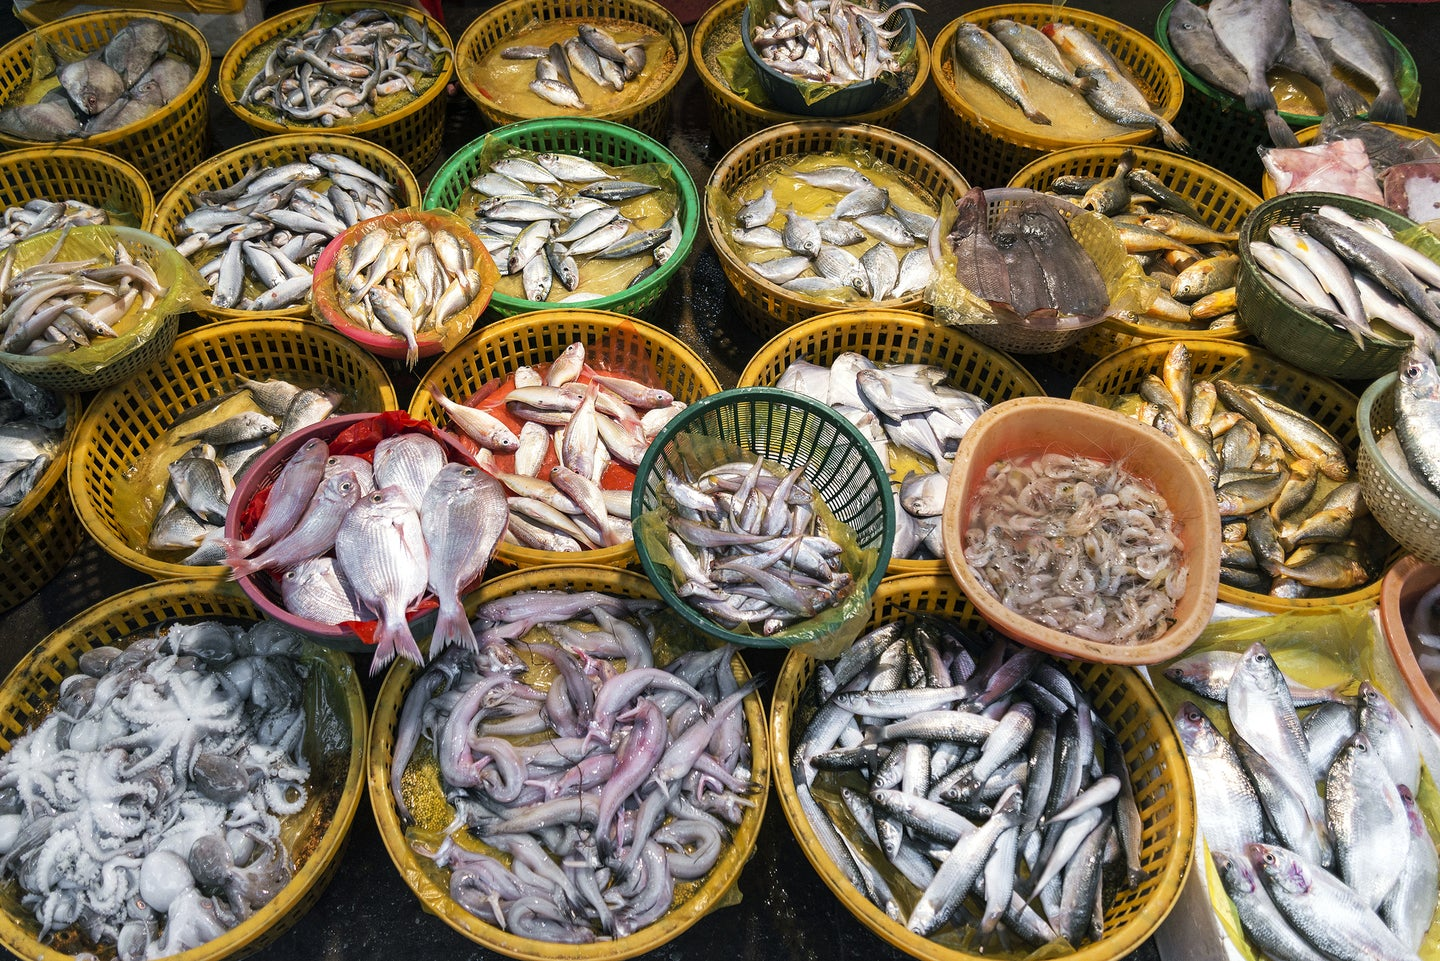 baskets of fish at an outdoor market